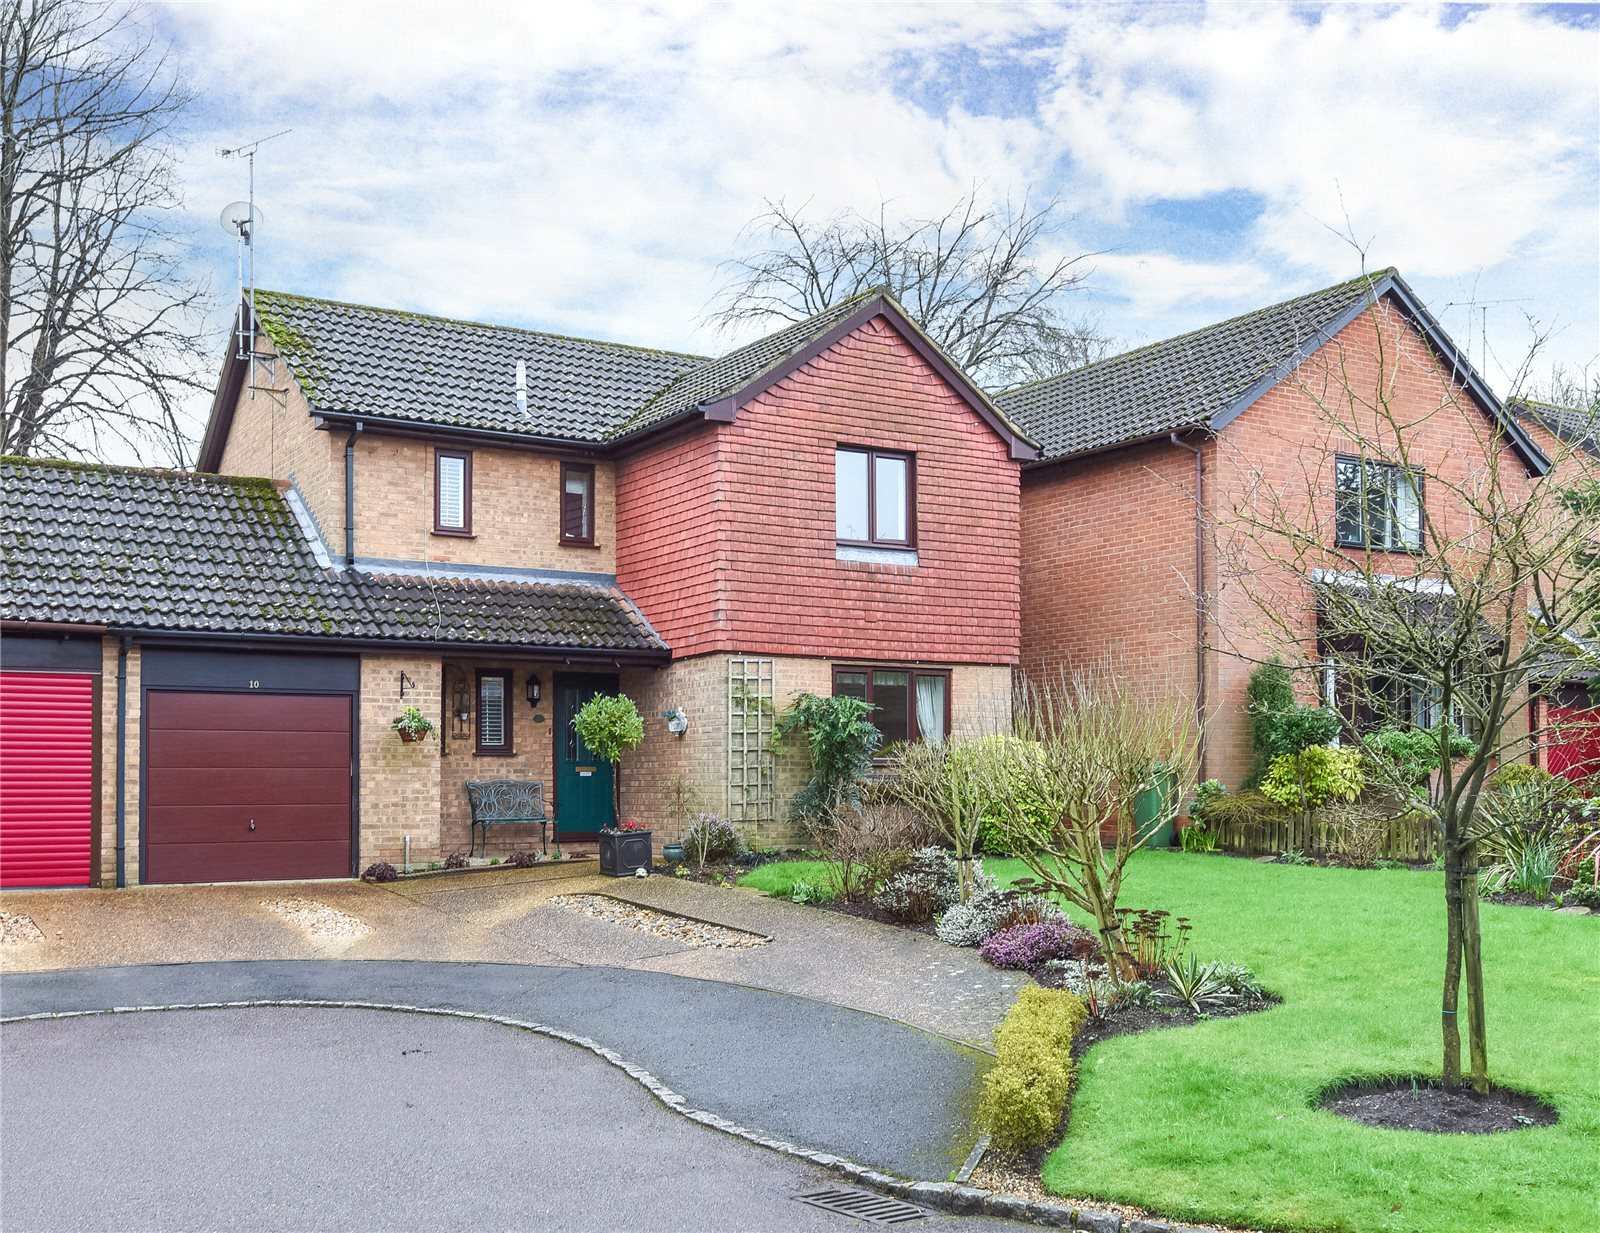 4 Bedrooms Detached House for sale in Goldsmith Way, Crowthorne, Berkshire, RG45